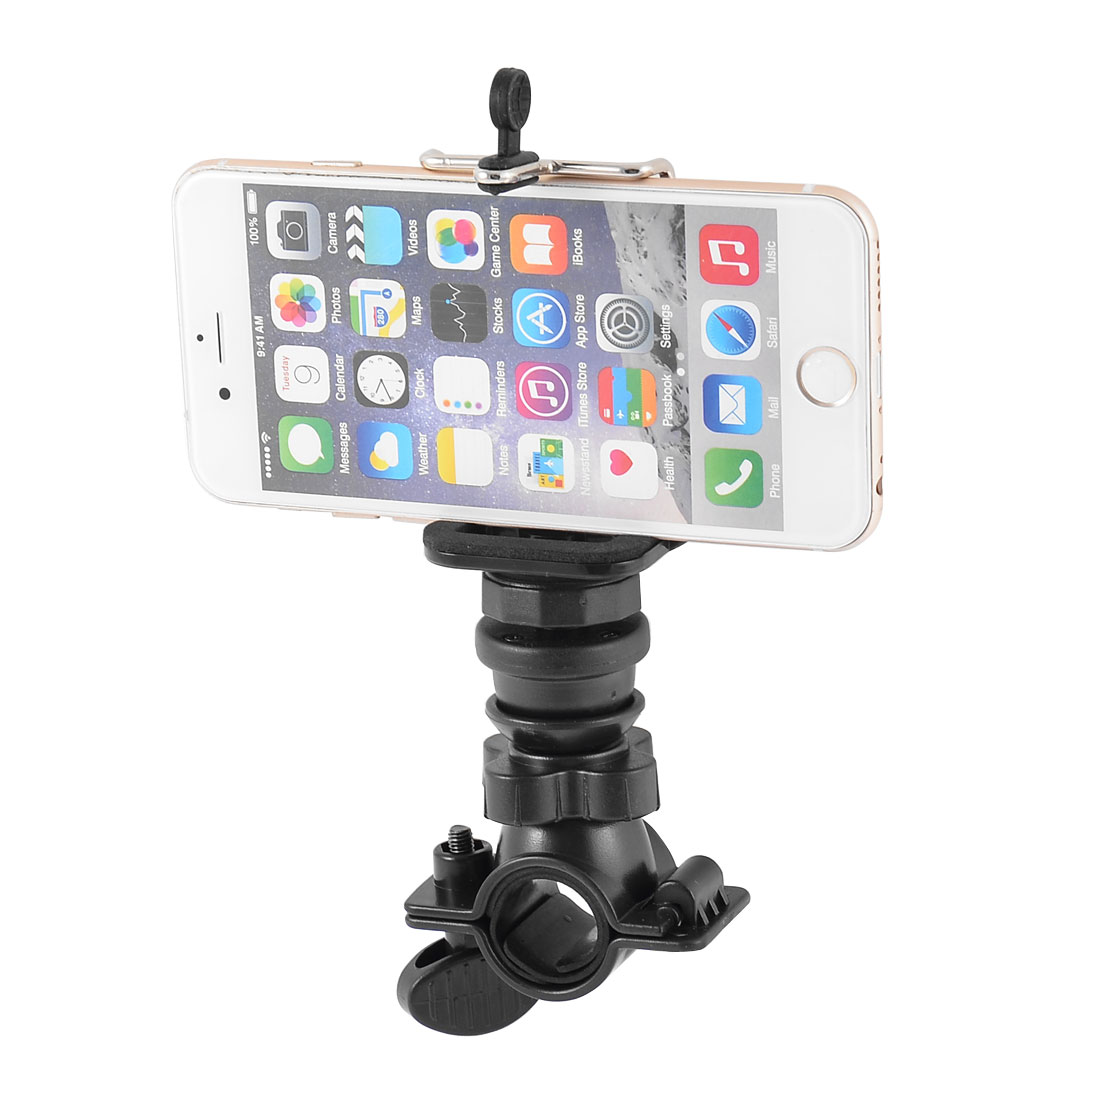 Cycling Bike Bicycle Handlebar Mount Cell Phone Holder Clamp Black